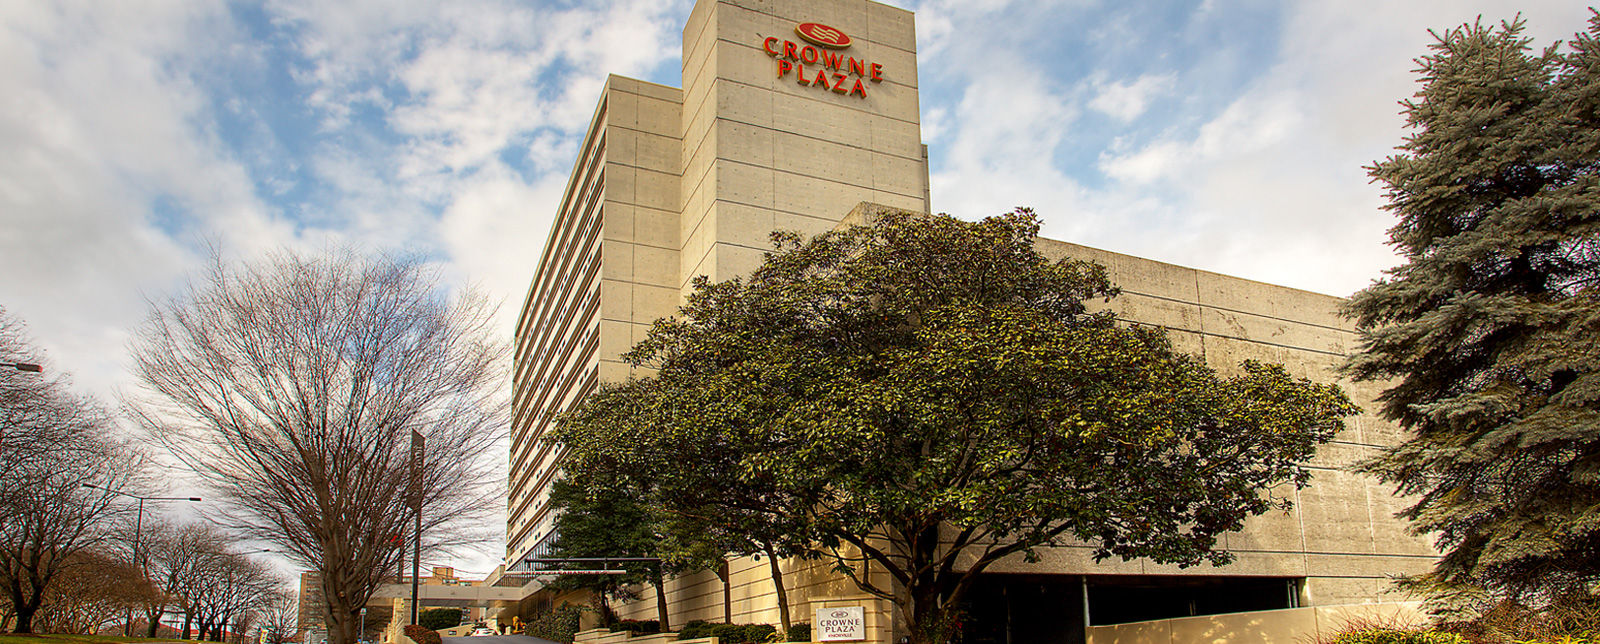 Crowne Plaza Knoxville Downtown University Hotel, Tennessee